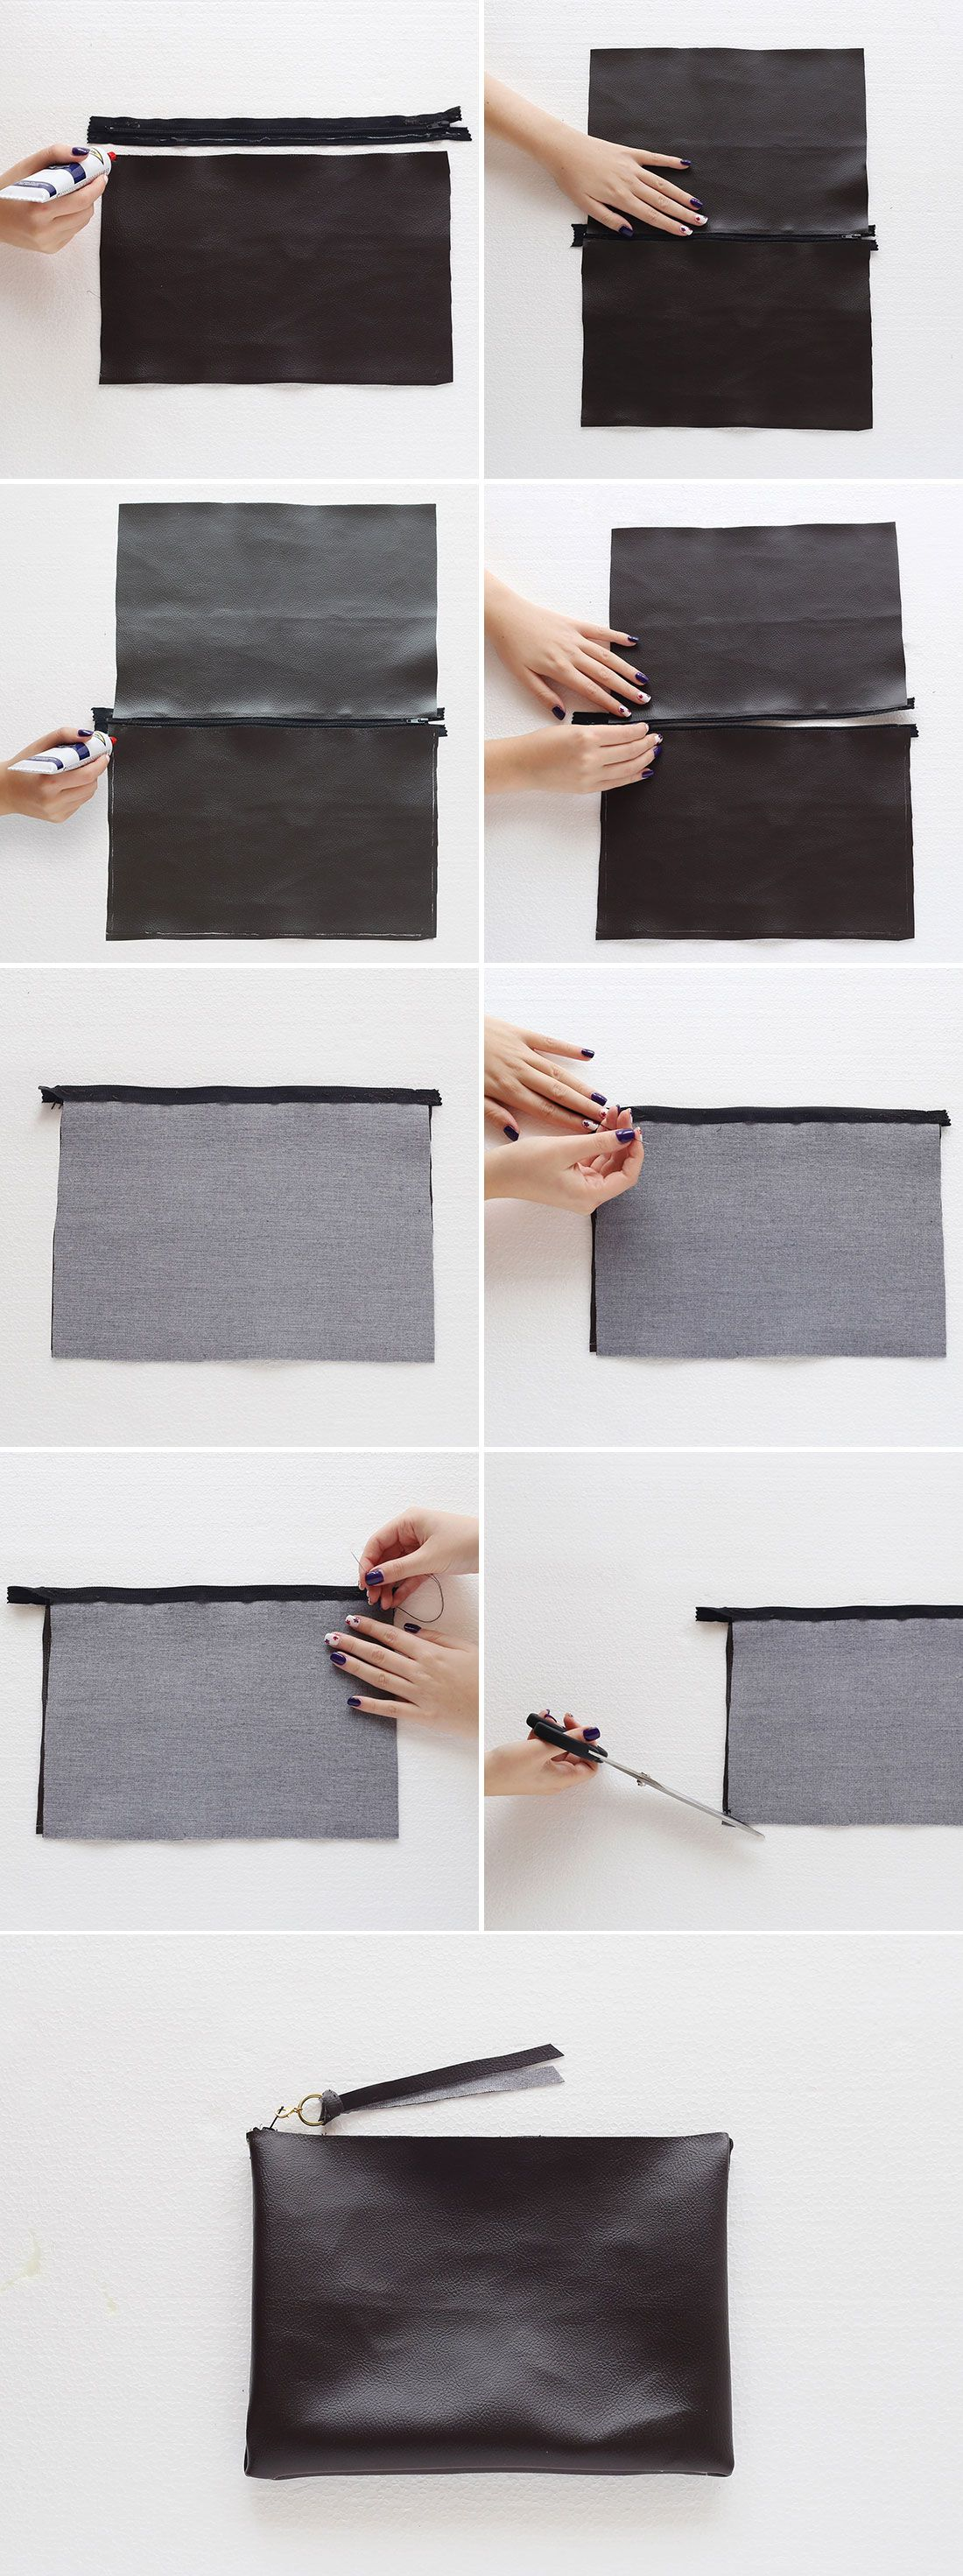 DIY This No-Sew Clutch in 8 Simple Steps